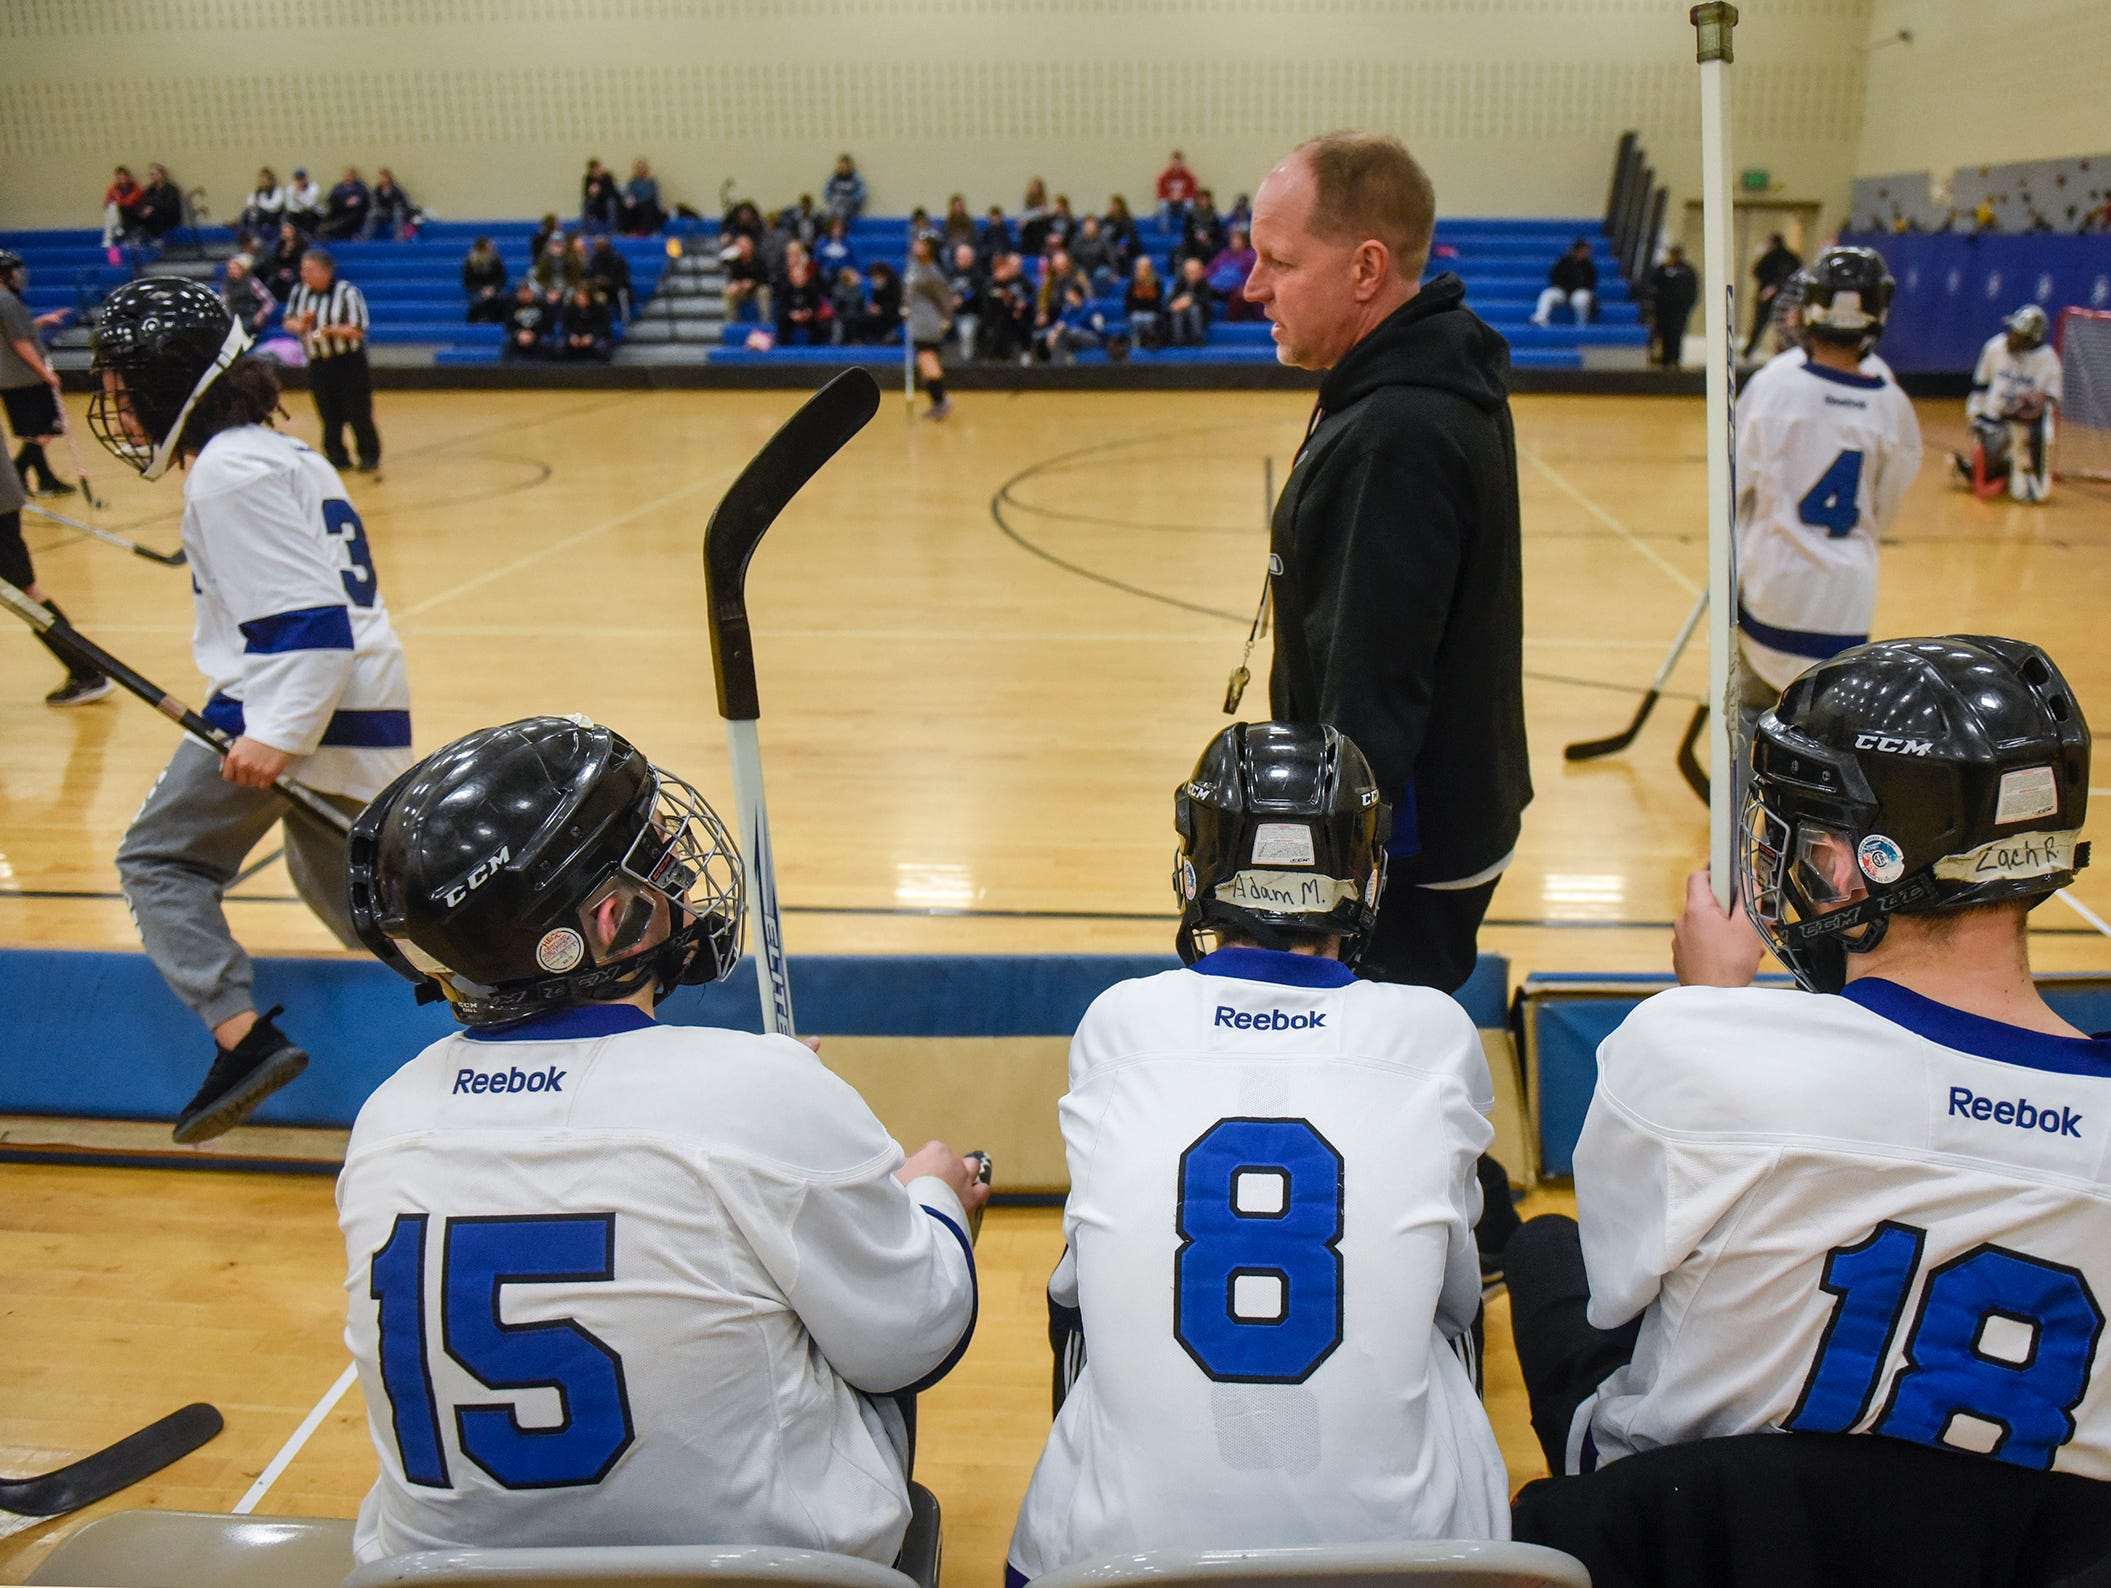 Head coach Mike Bakken of the St. Cloud Area Slapshots talks to his players on the bench during the Wednesday, Feb. 6, game against Buffalo Area at Kennedy Community School in St. Joseph.